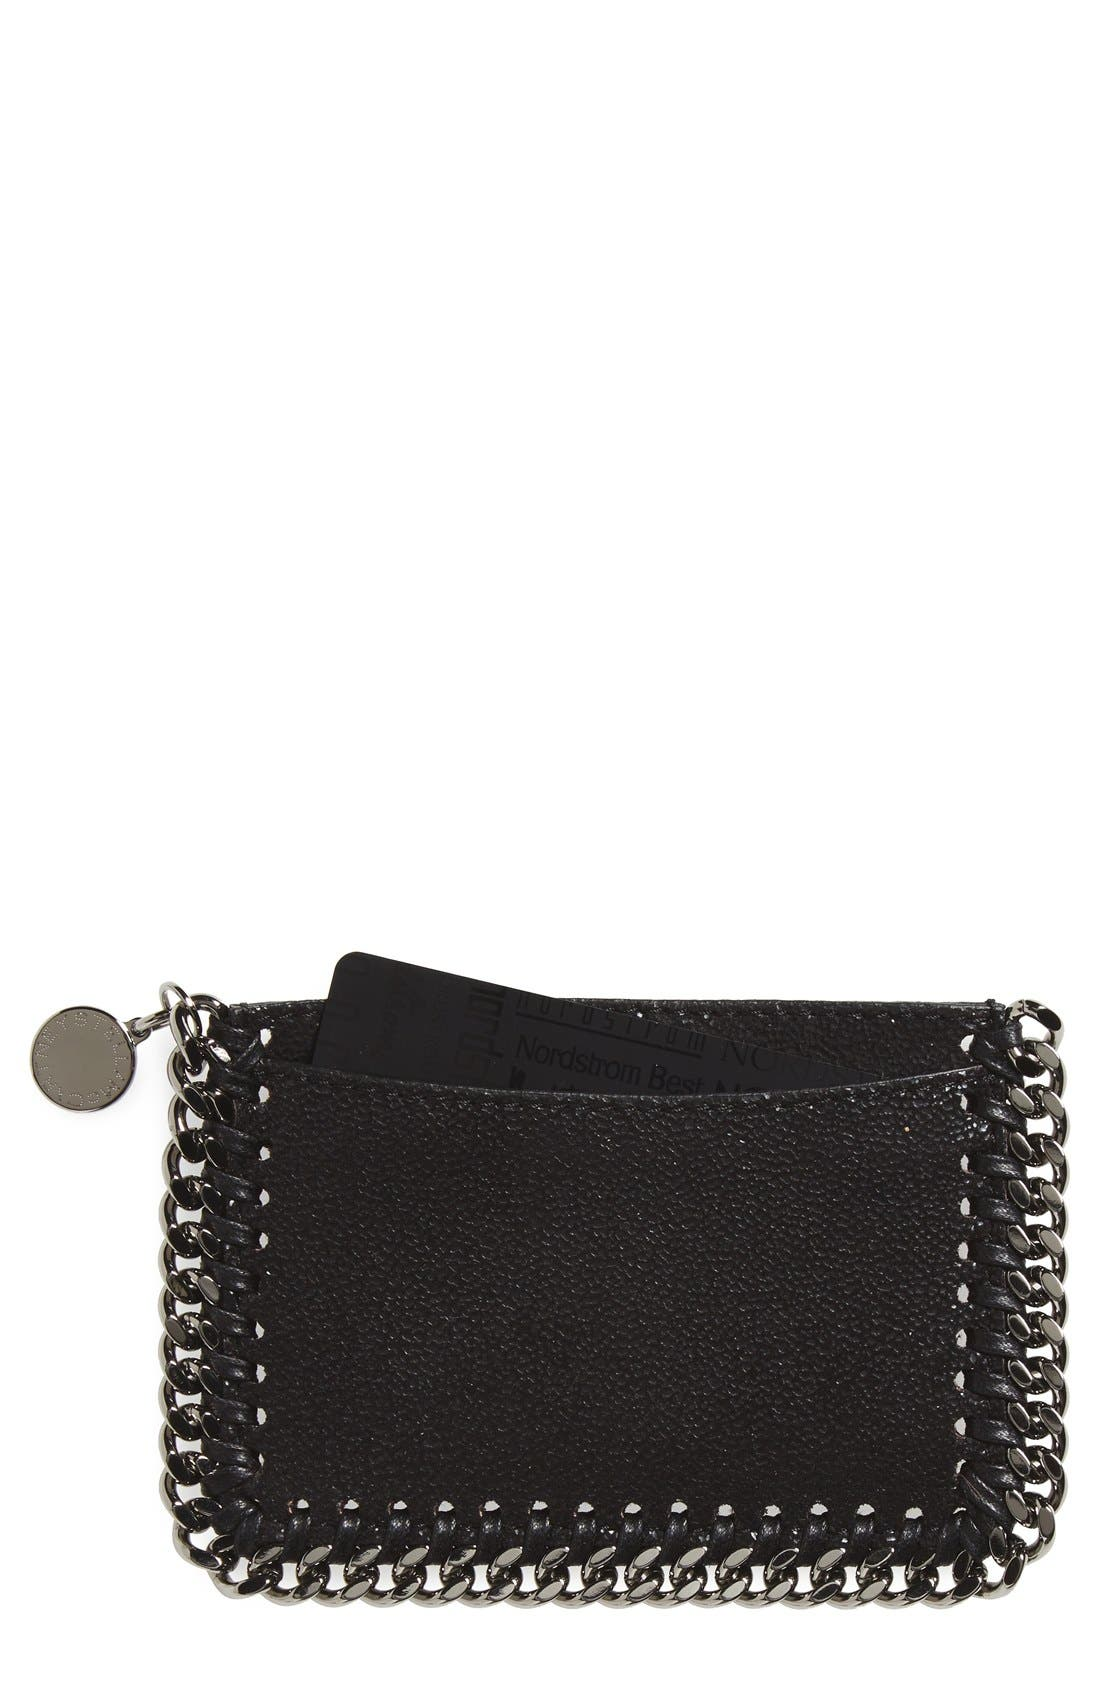 'Falabella - Shaggy Deer' Card Case,                             Main thumbnail 1, color,                             BLACK